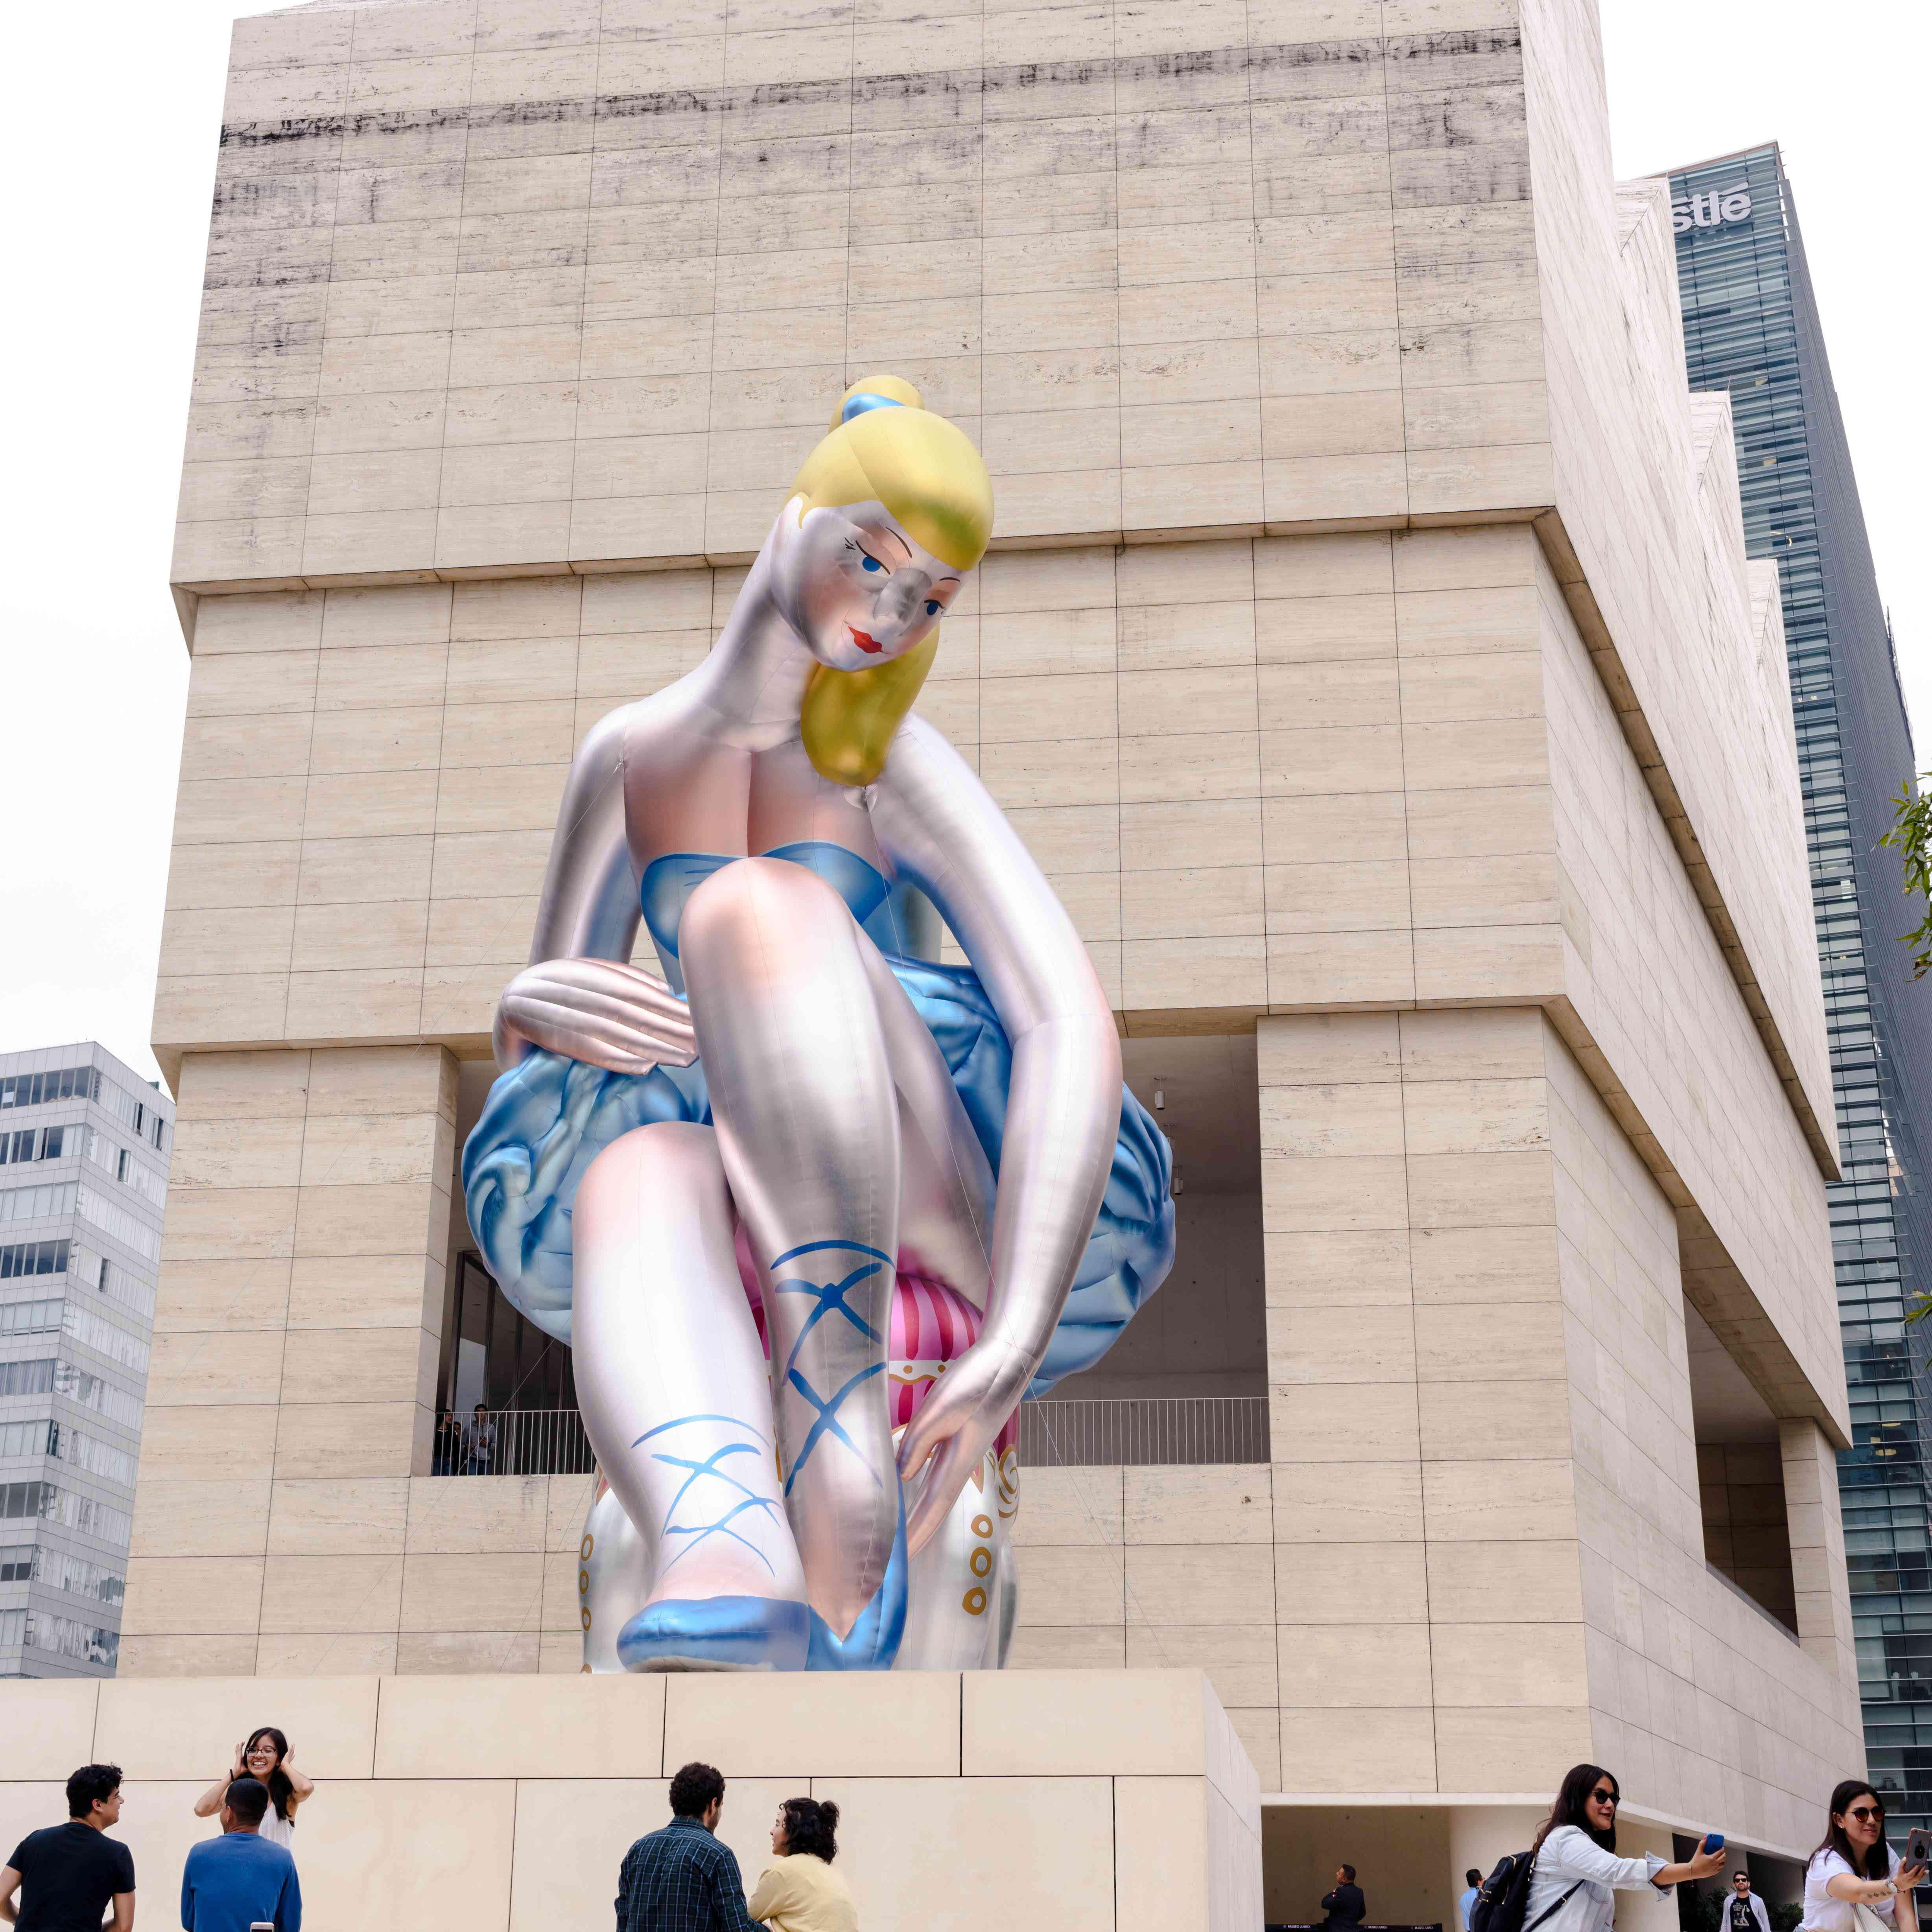 The exterior of Jumex museum with a large statue of a ballerina